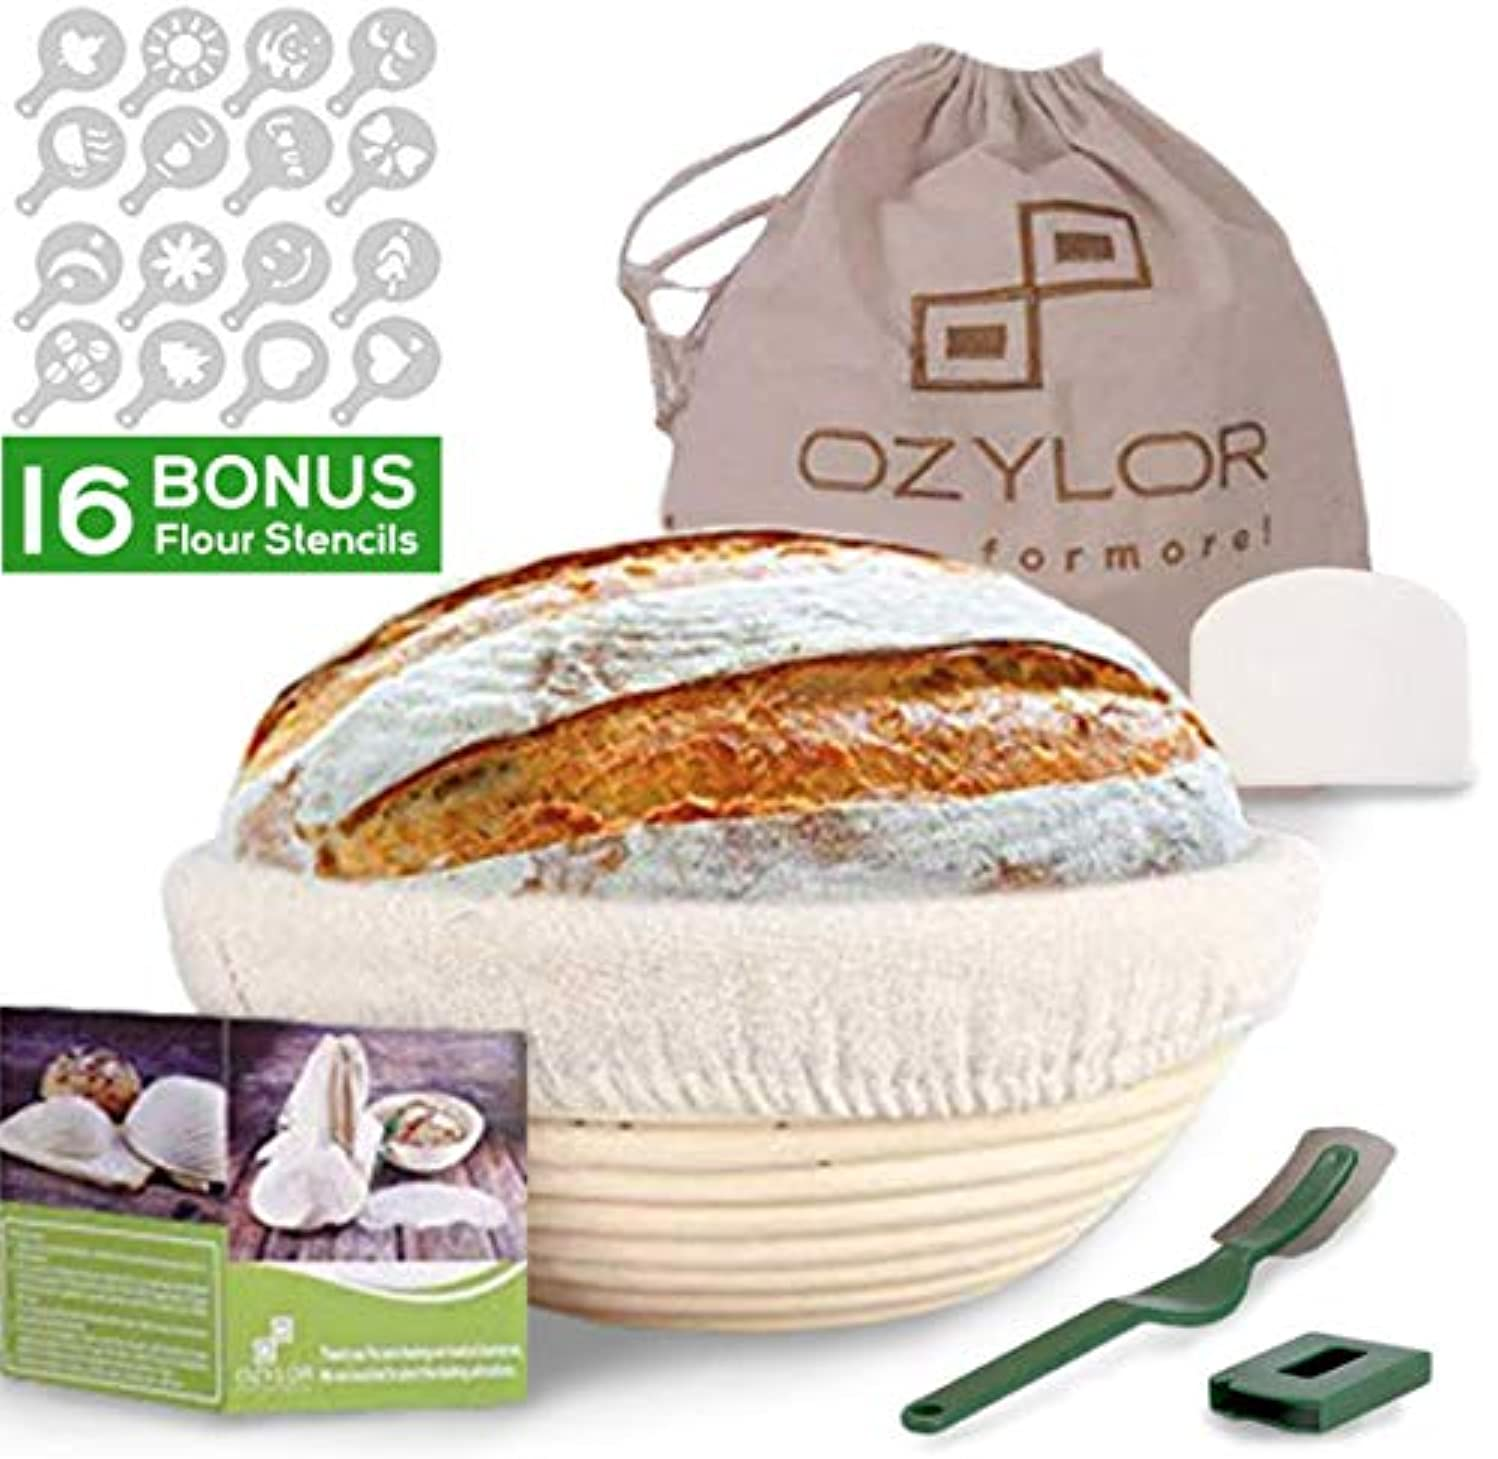 10inch Banneton Proofing Basket Set – Complete Bakers Kit of Round Bread Basket with Liner, Dough Scraper, 16 Flour Stencils, Bread Liner, Storage Bag - Bread Lame for Artisan Bakers and Home Use